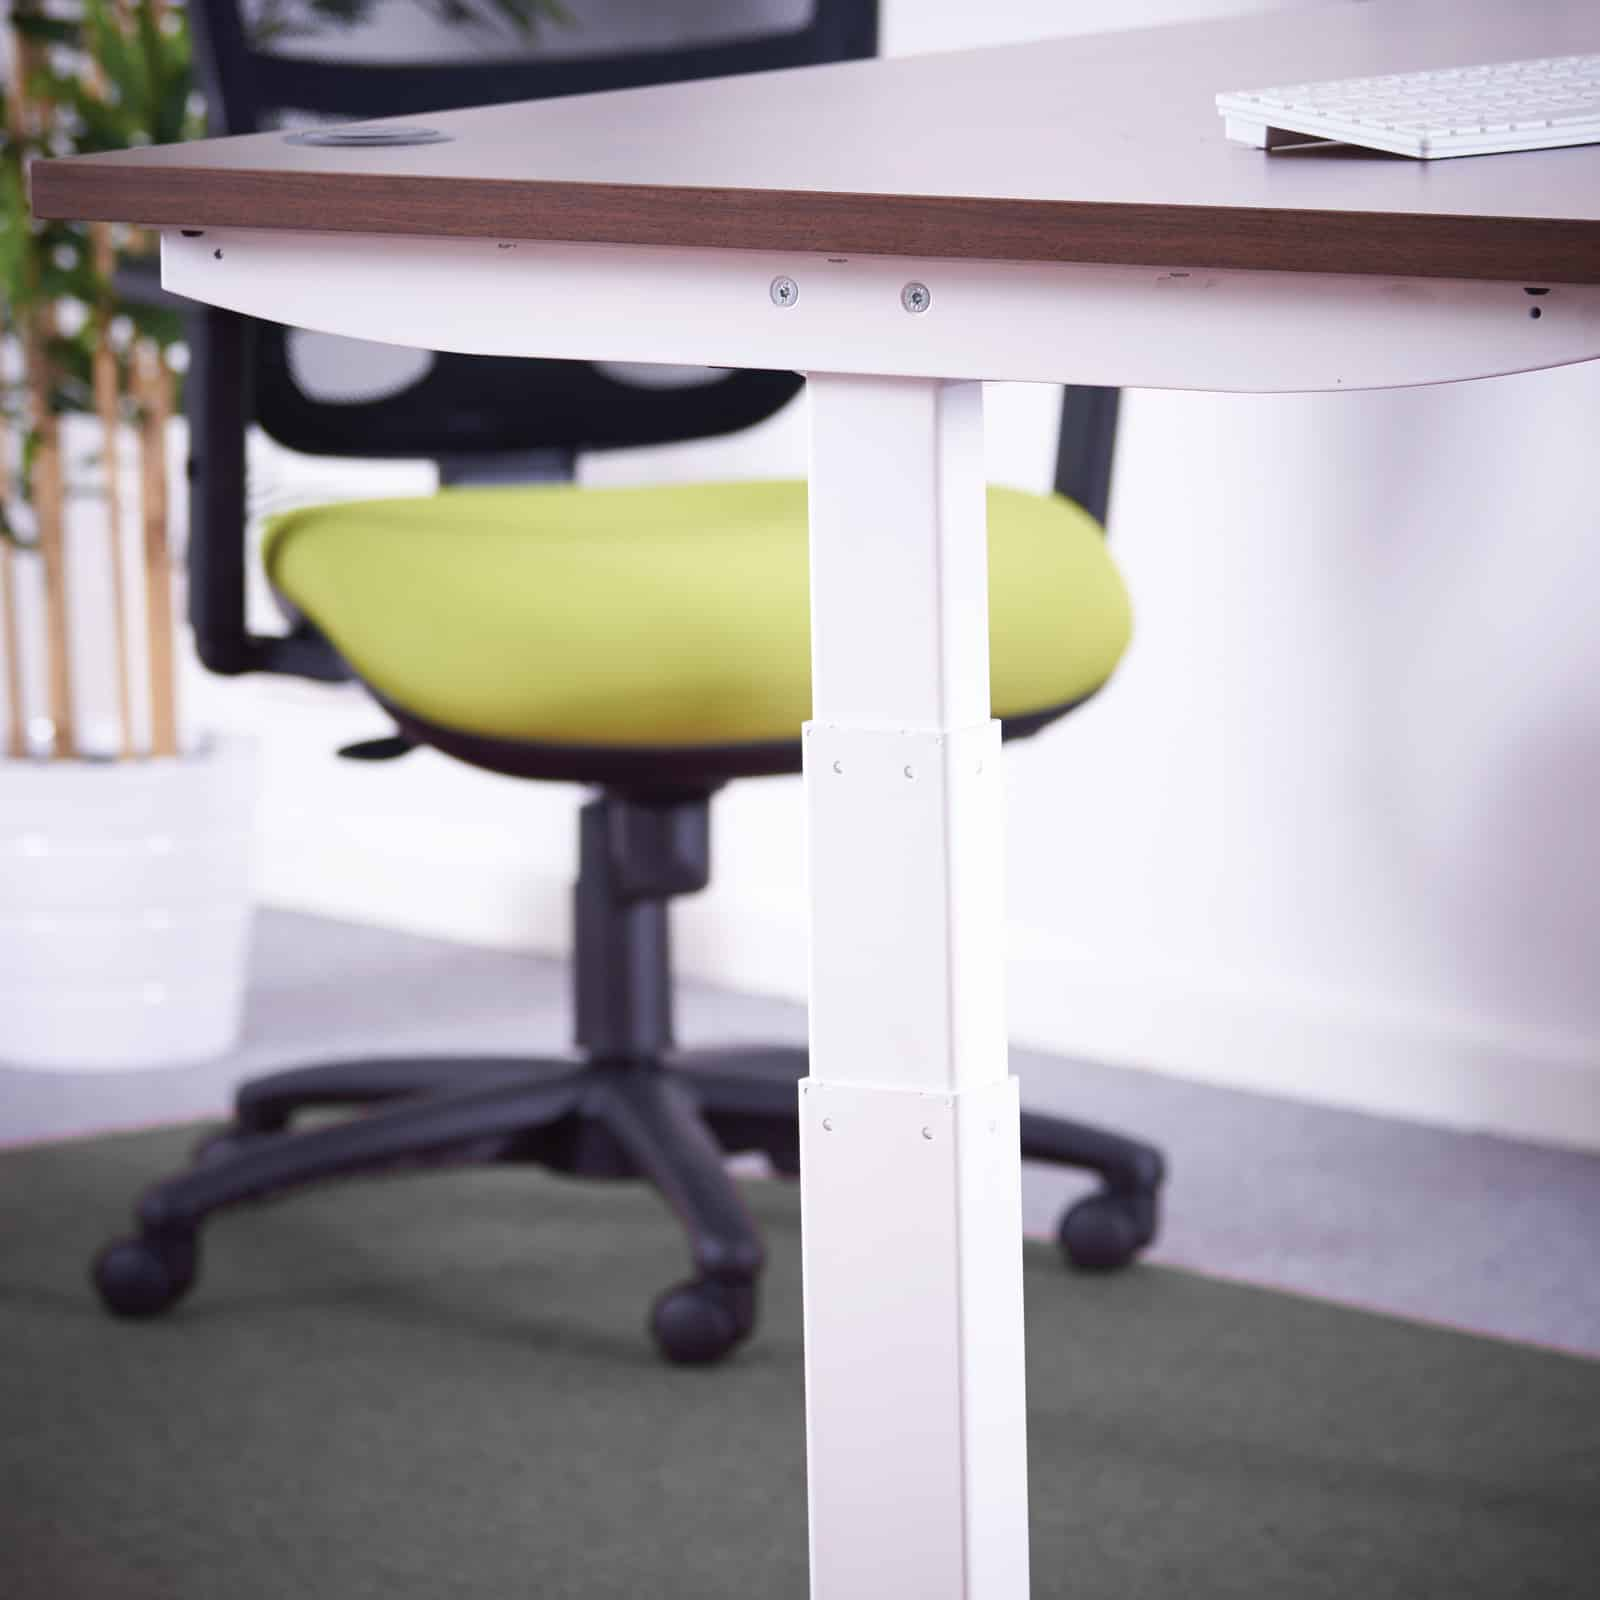 Benefits of a Sit Stand Desk Rosehill Furniture Blog : elev83sections from www.rosehill.co.uk size 1600 x 1600 jpeg 511kB